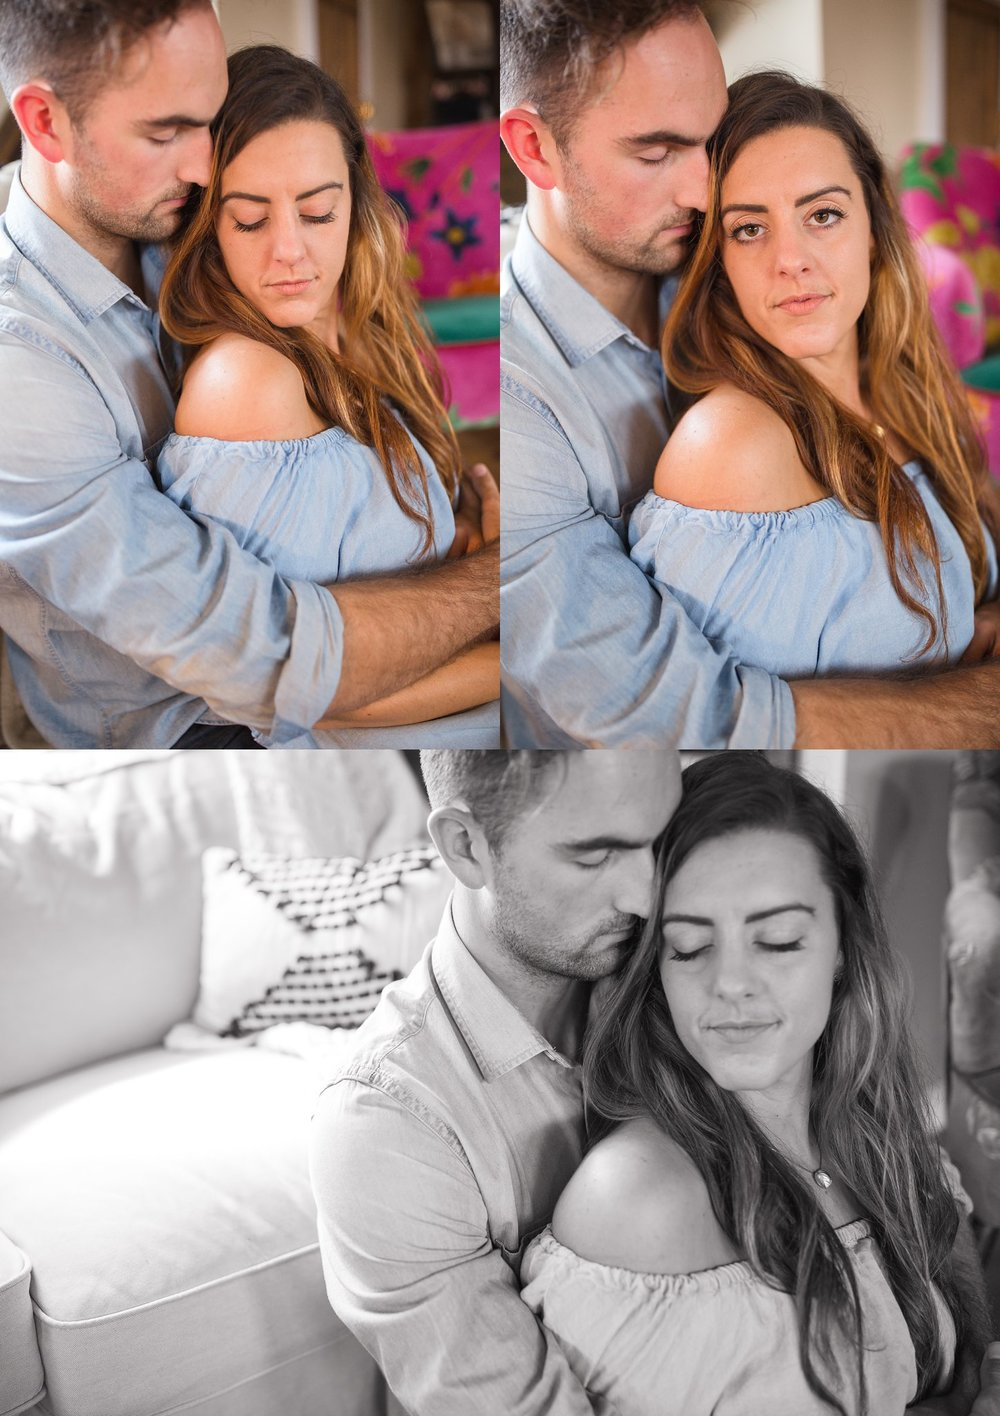 Indoor-Intimate-Engagement-Session24.jpg